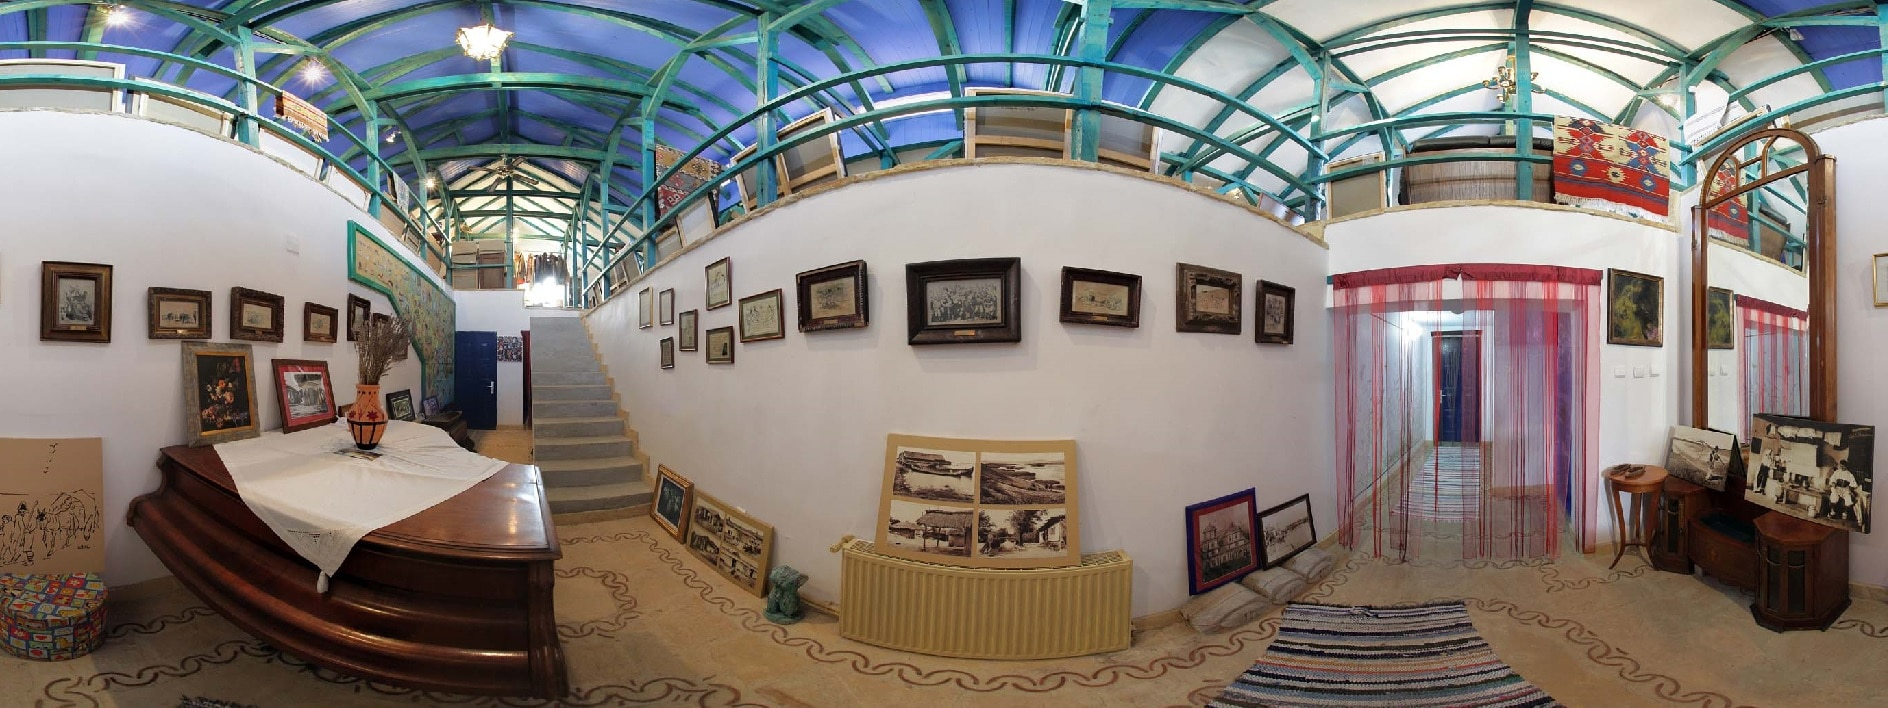 Galeria de artă - imagine din interior